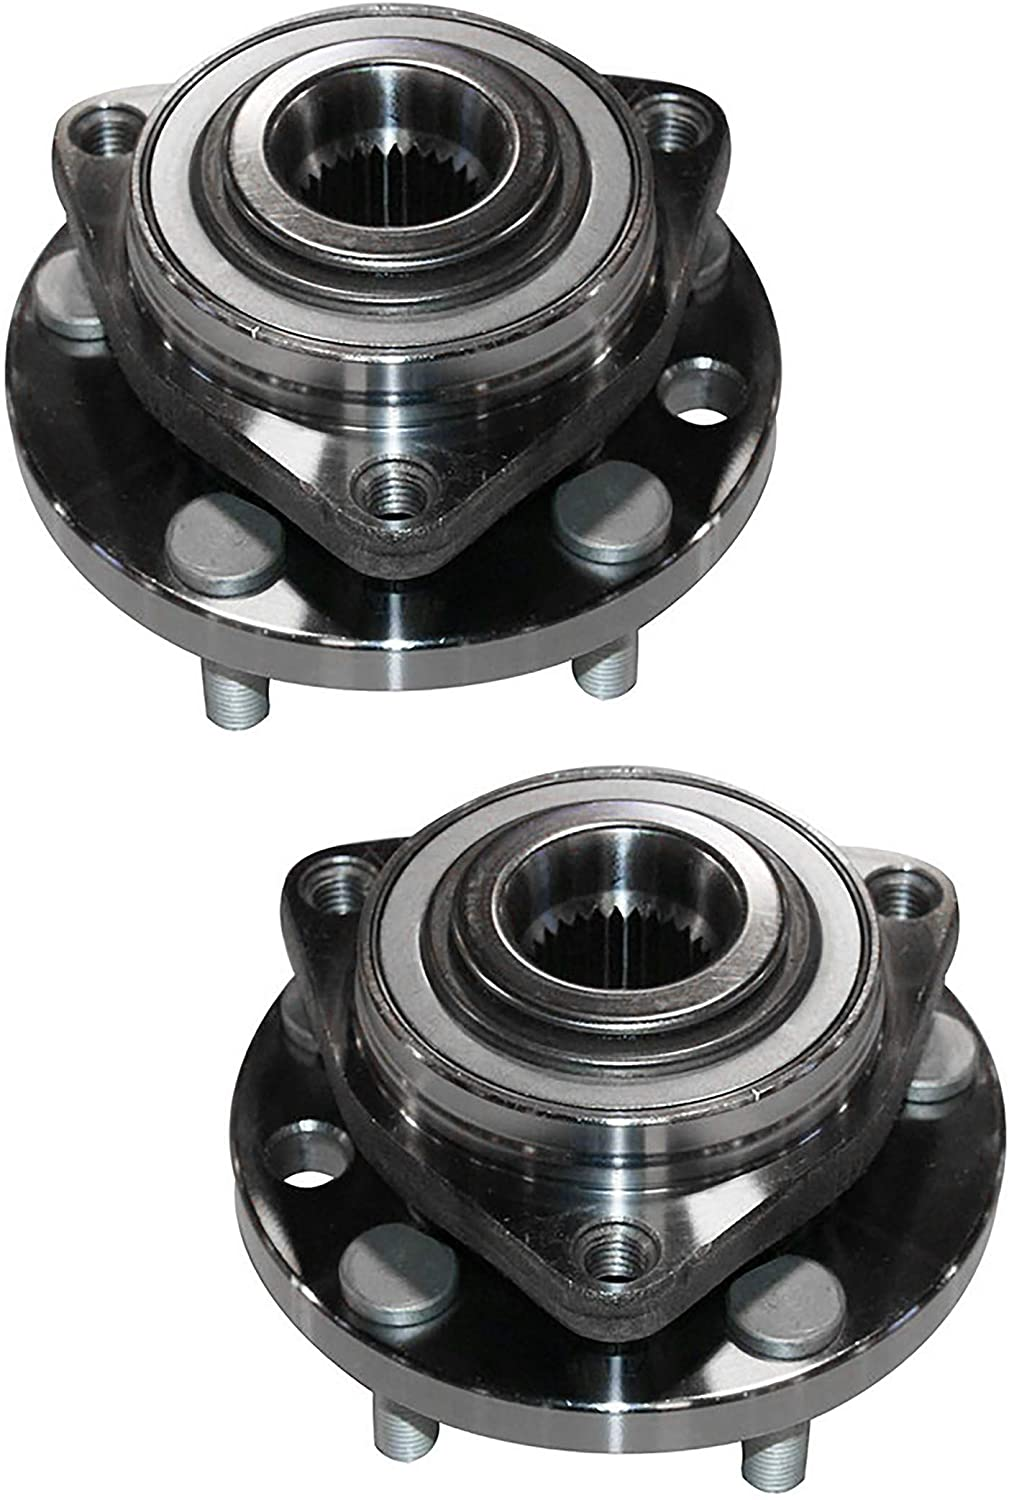 Wheel Hub Bearing Front Set of 2 Assembly Compatible With Pontiac 2006 2007 2008 Solstice